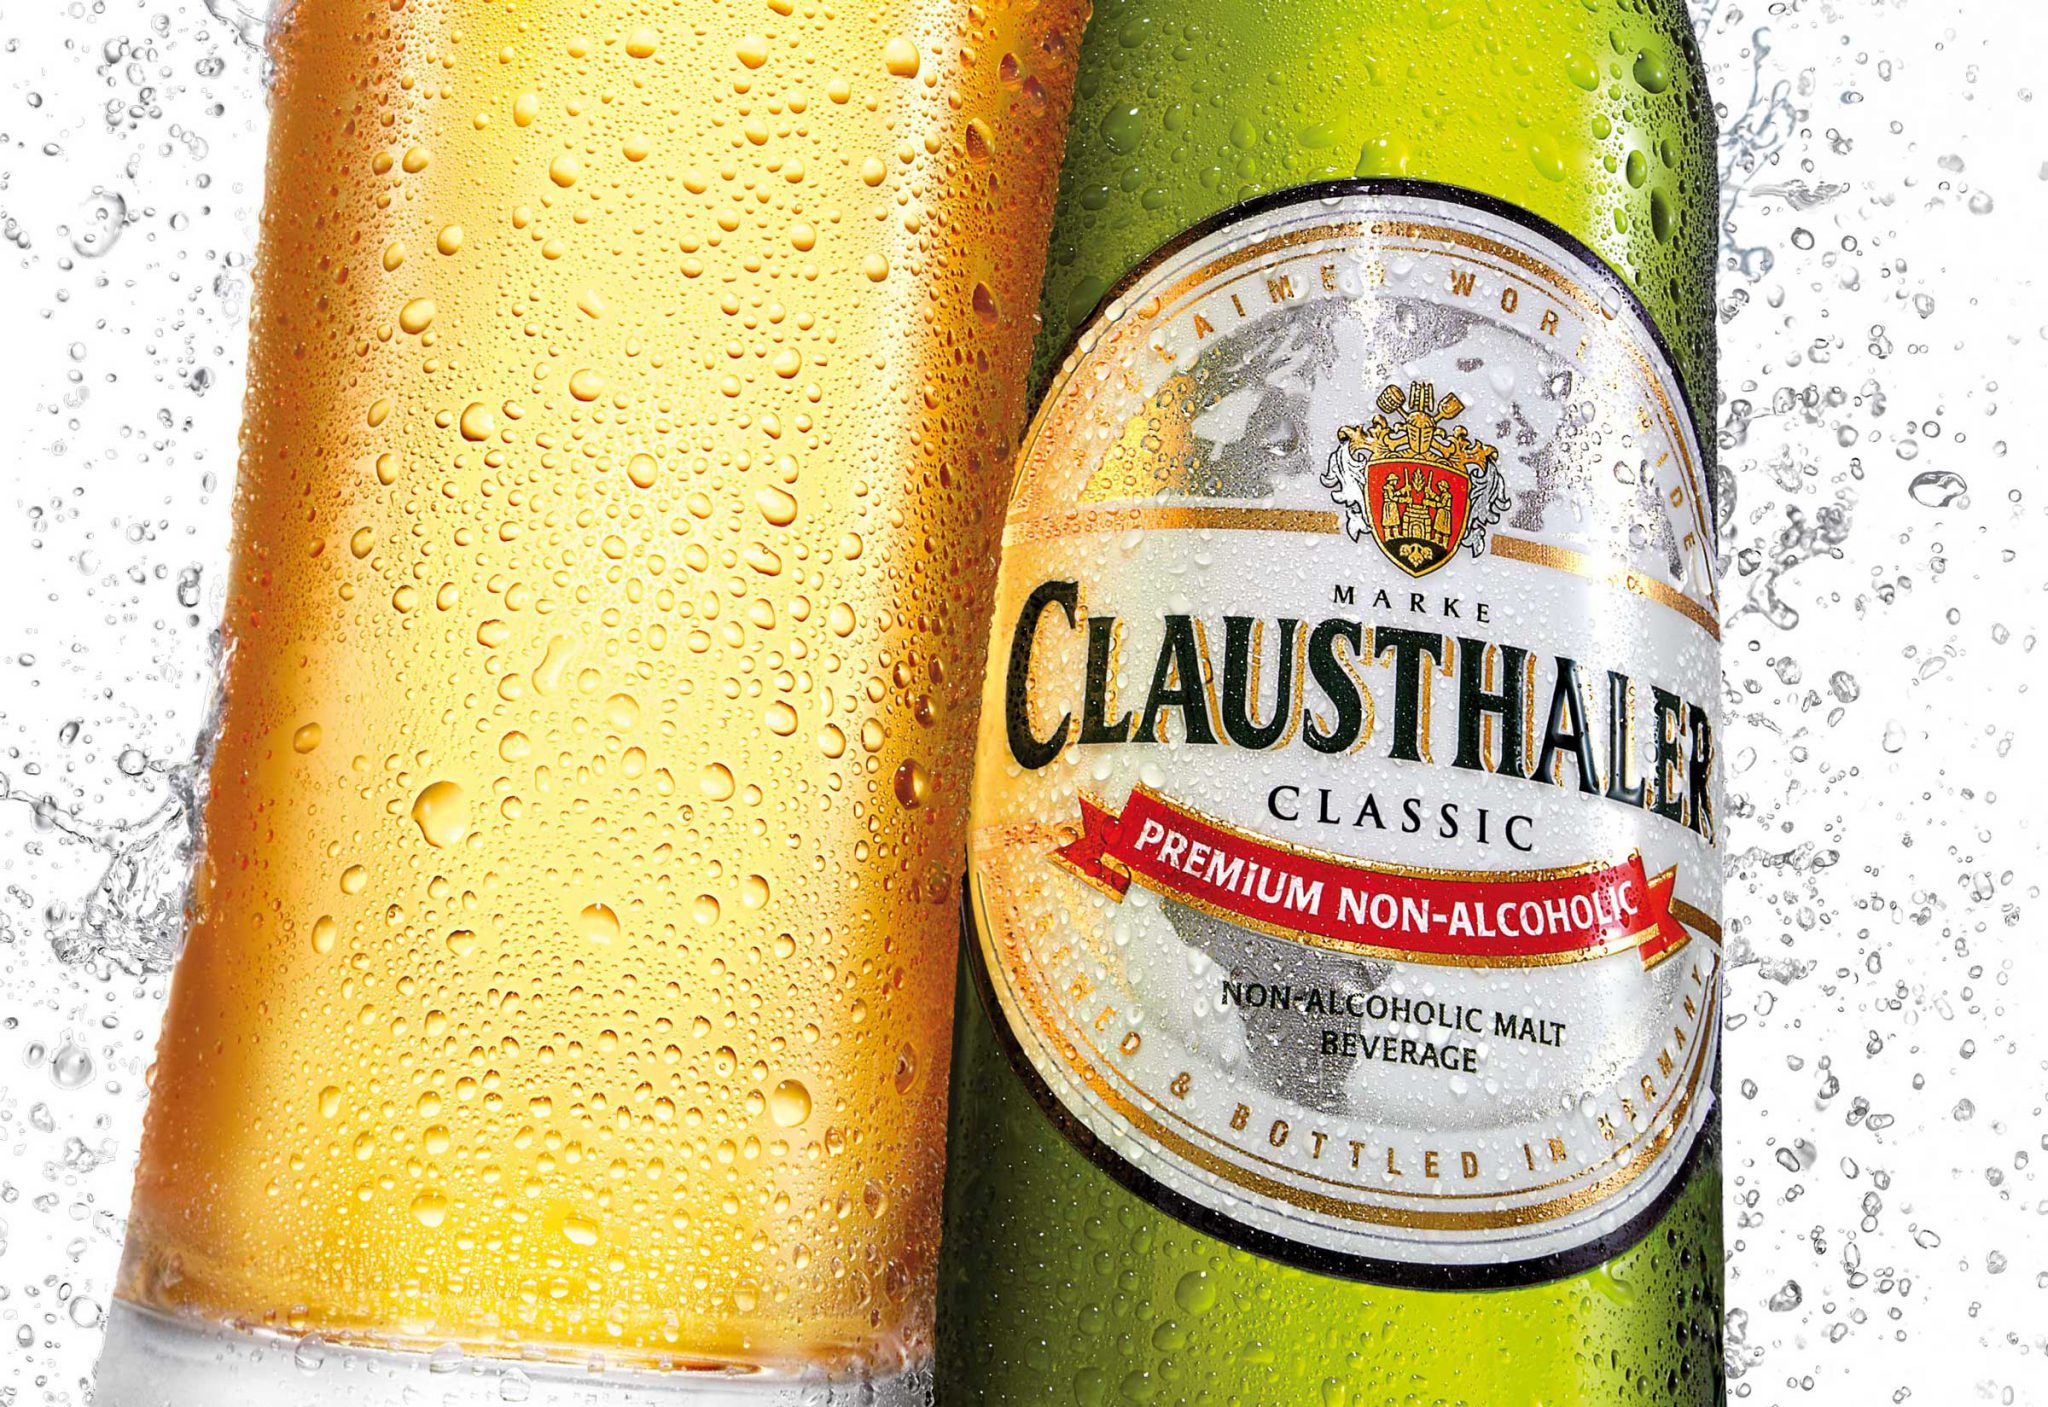 Clausthaler Branded Glass with Bottle